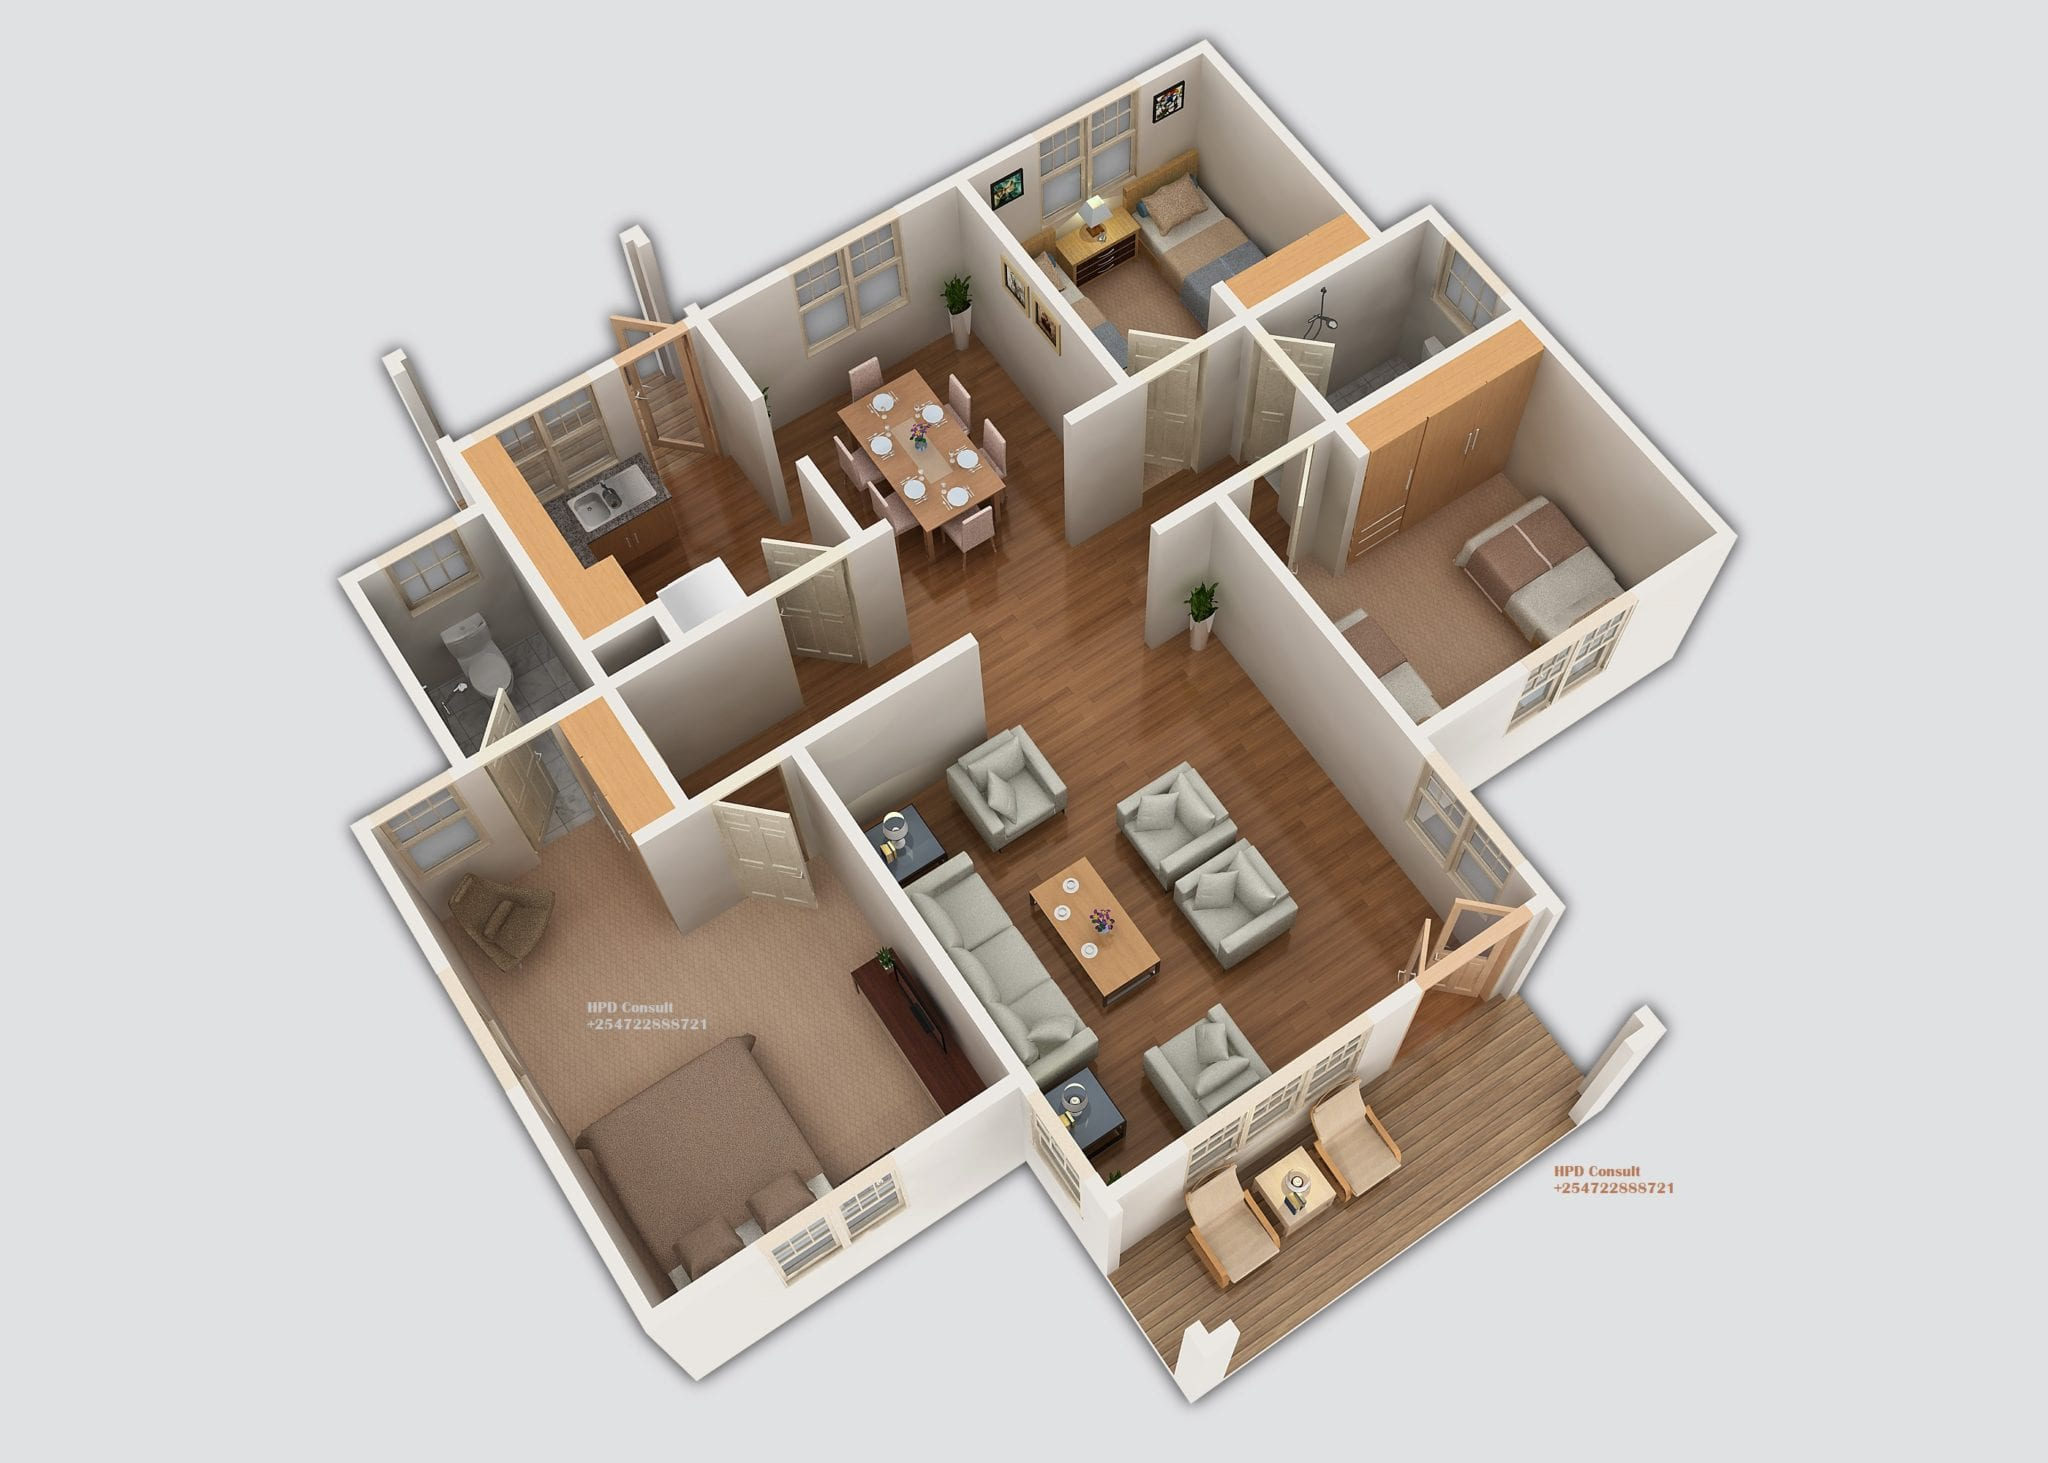 Three Bedroom House Plan With Master Bedroom En Suite